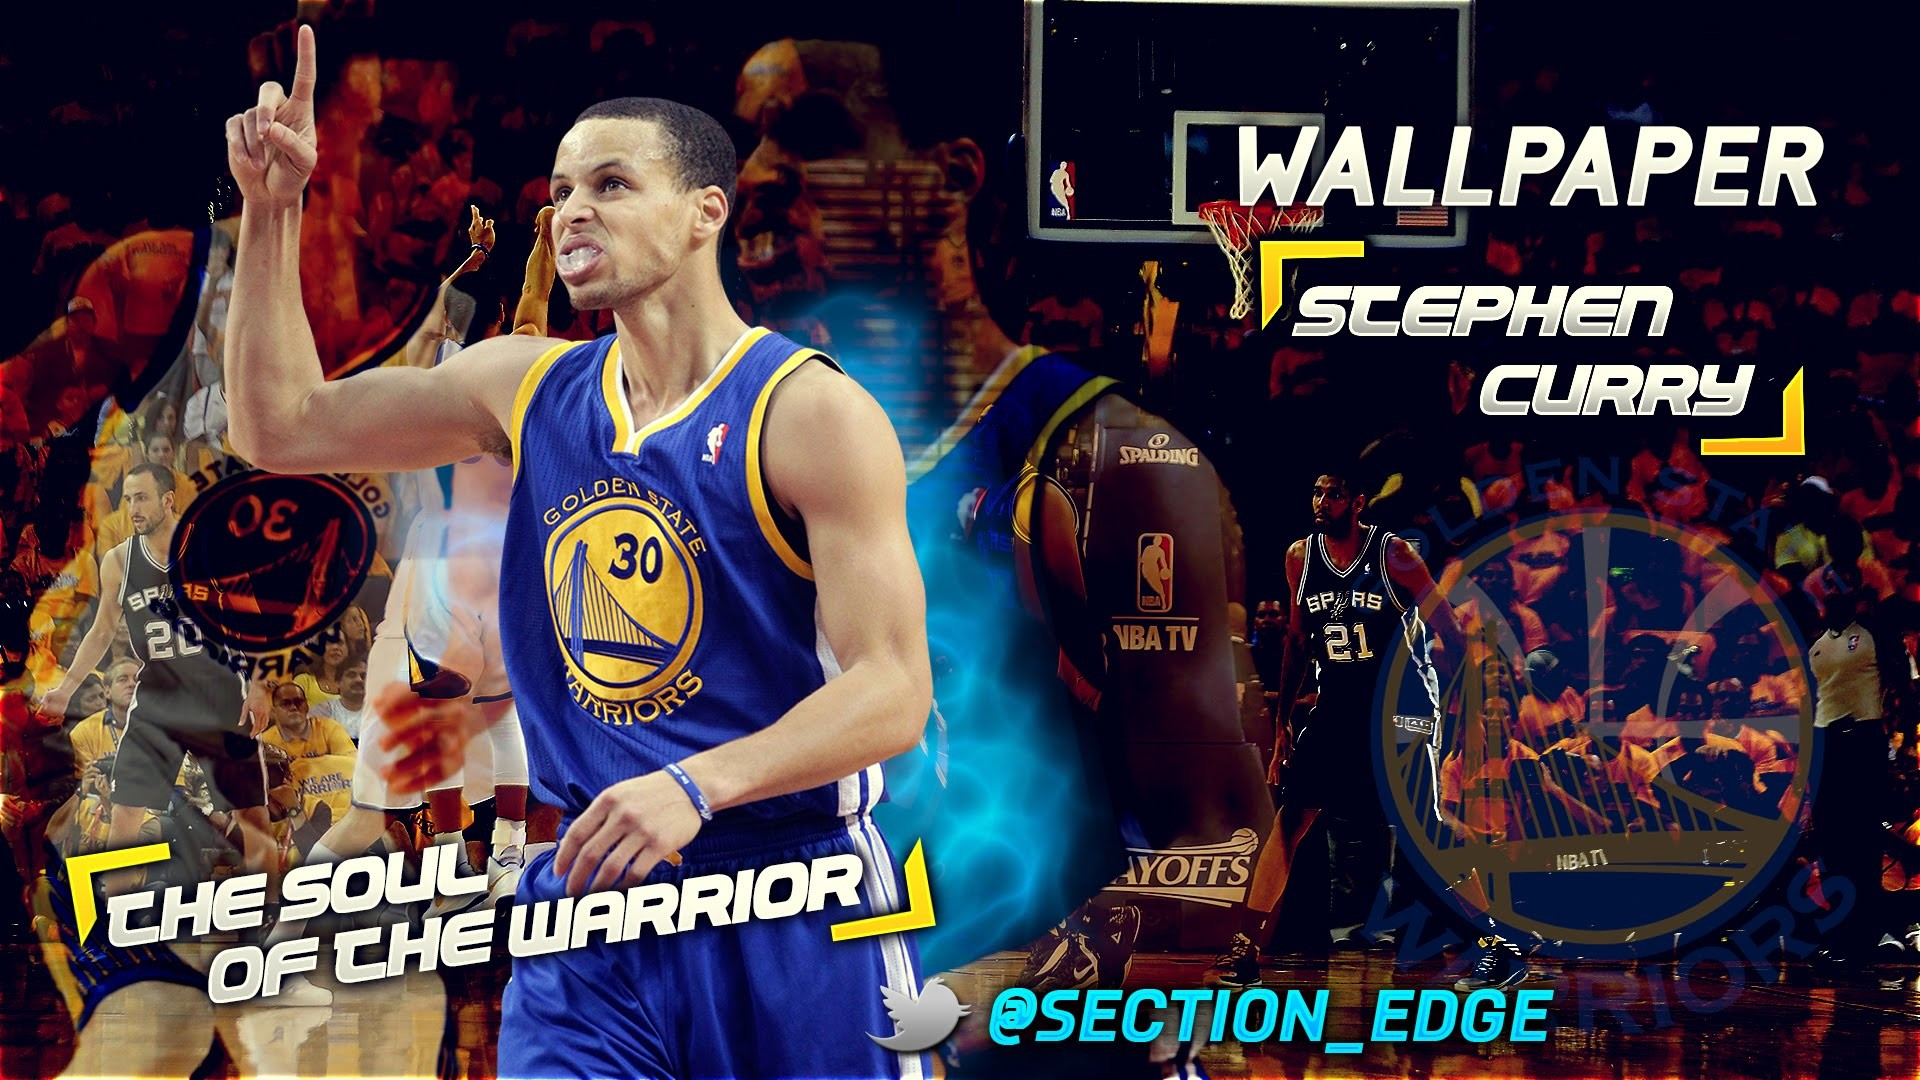 Wallpaper, Of, Stephen, Curry